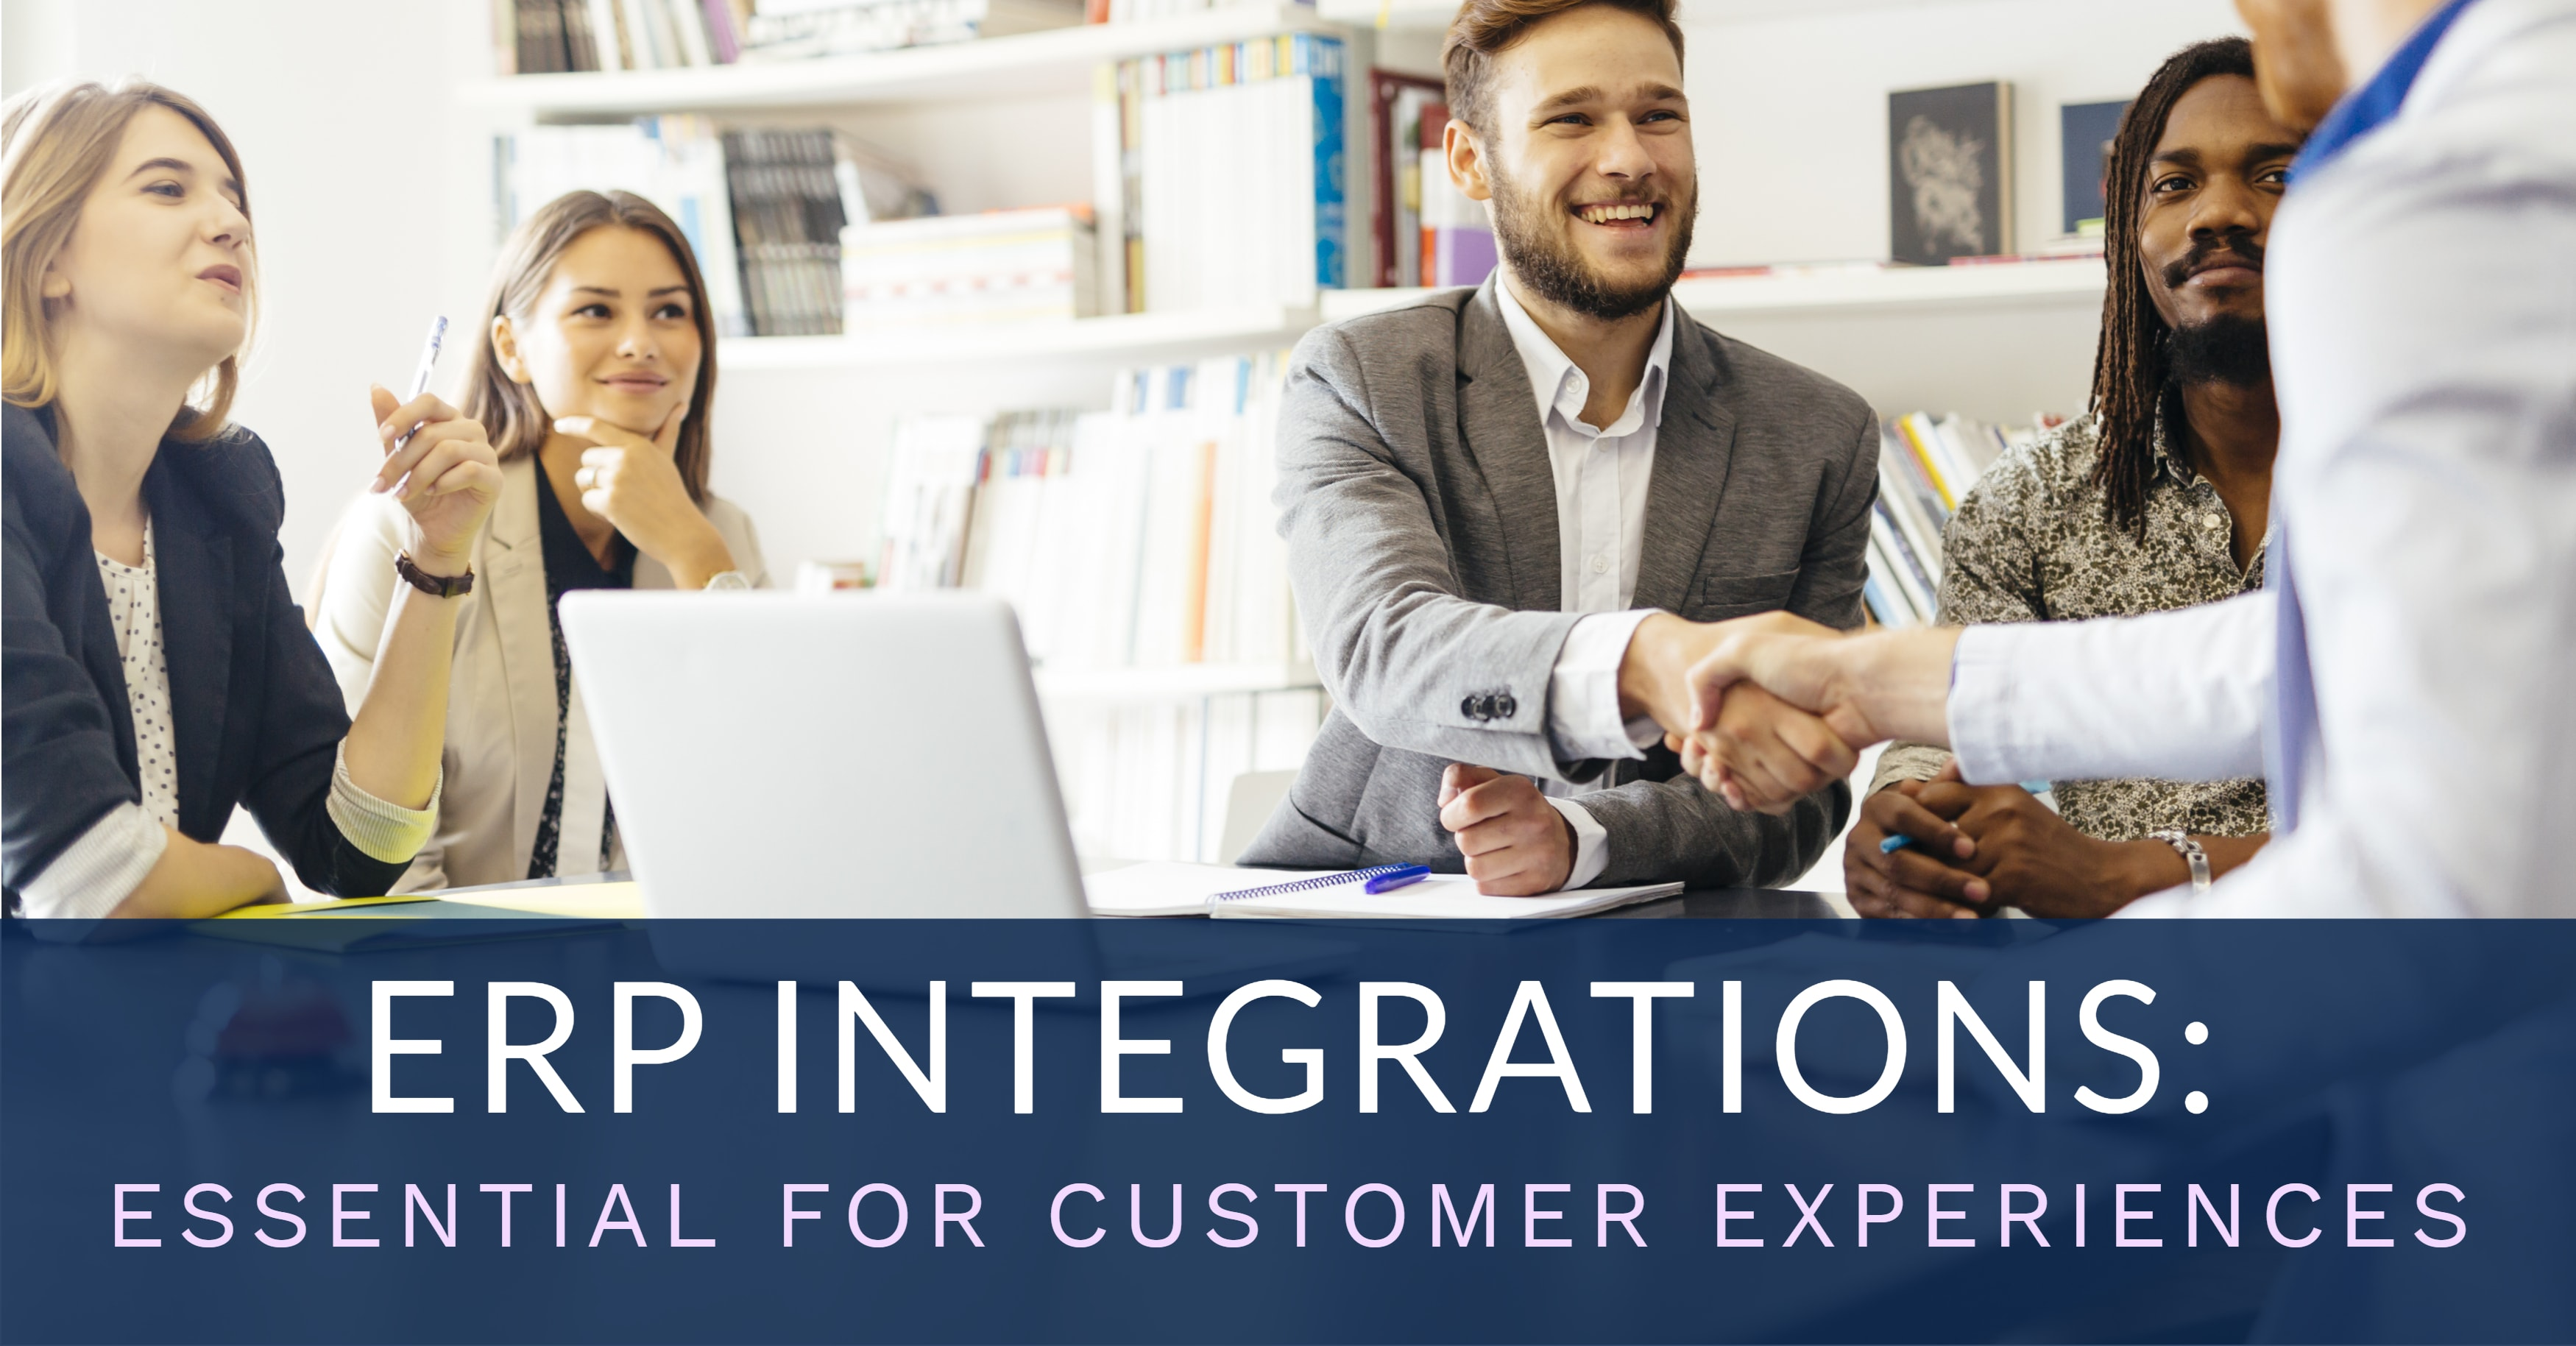 ERP Integrations: Essential for Customer Experiences